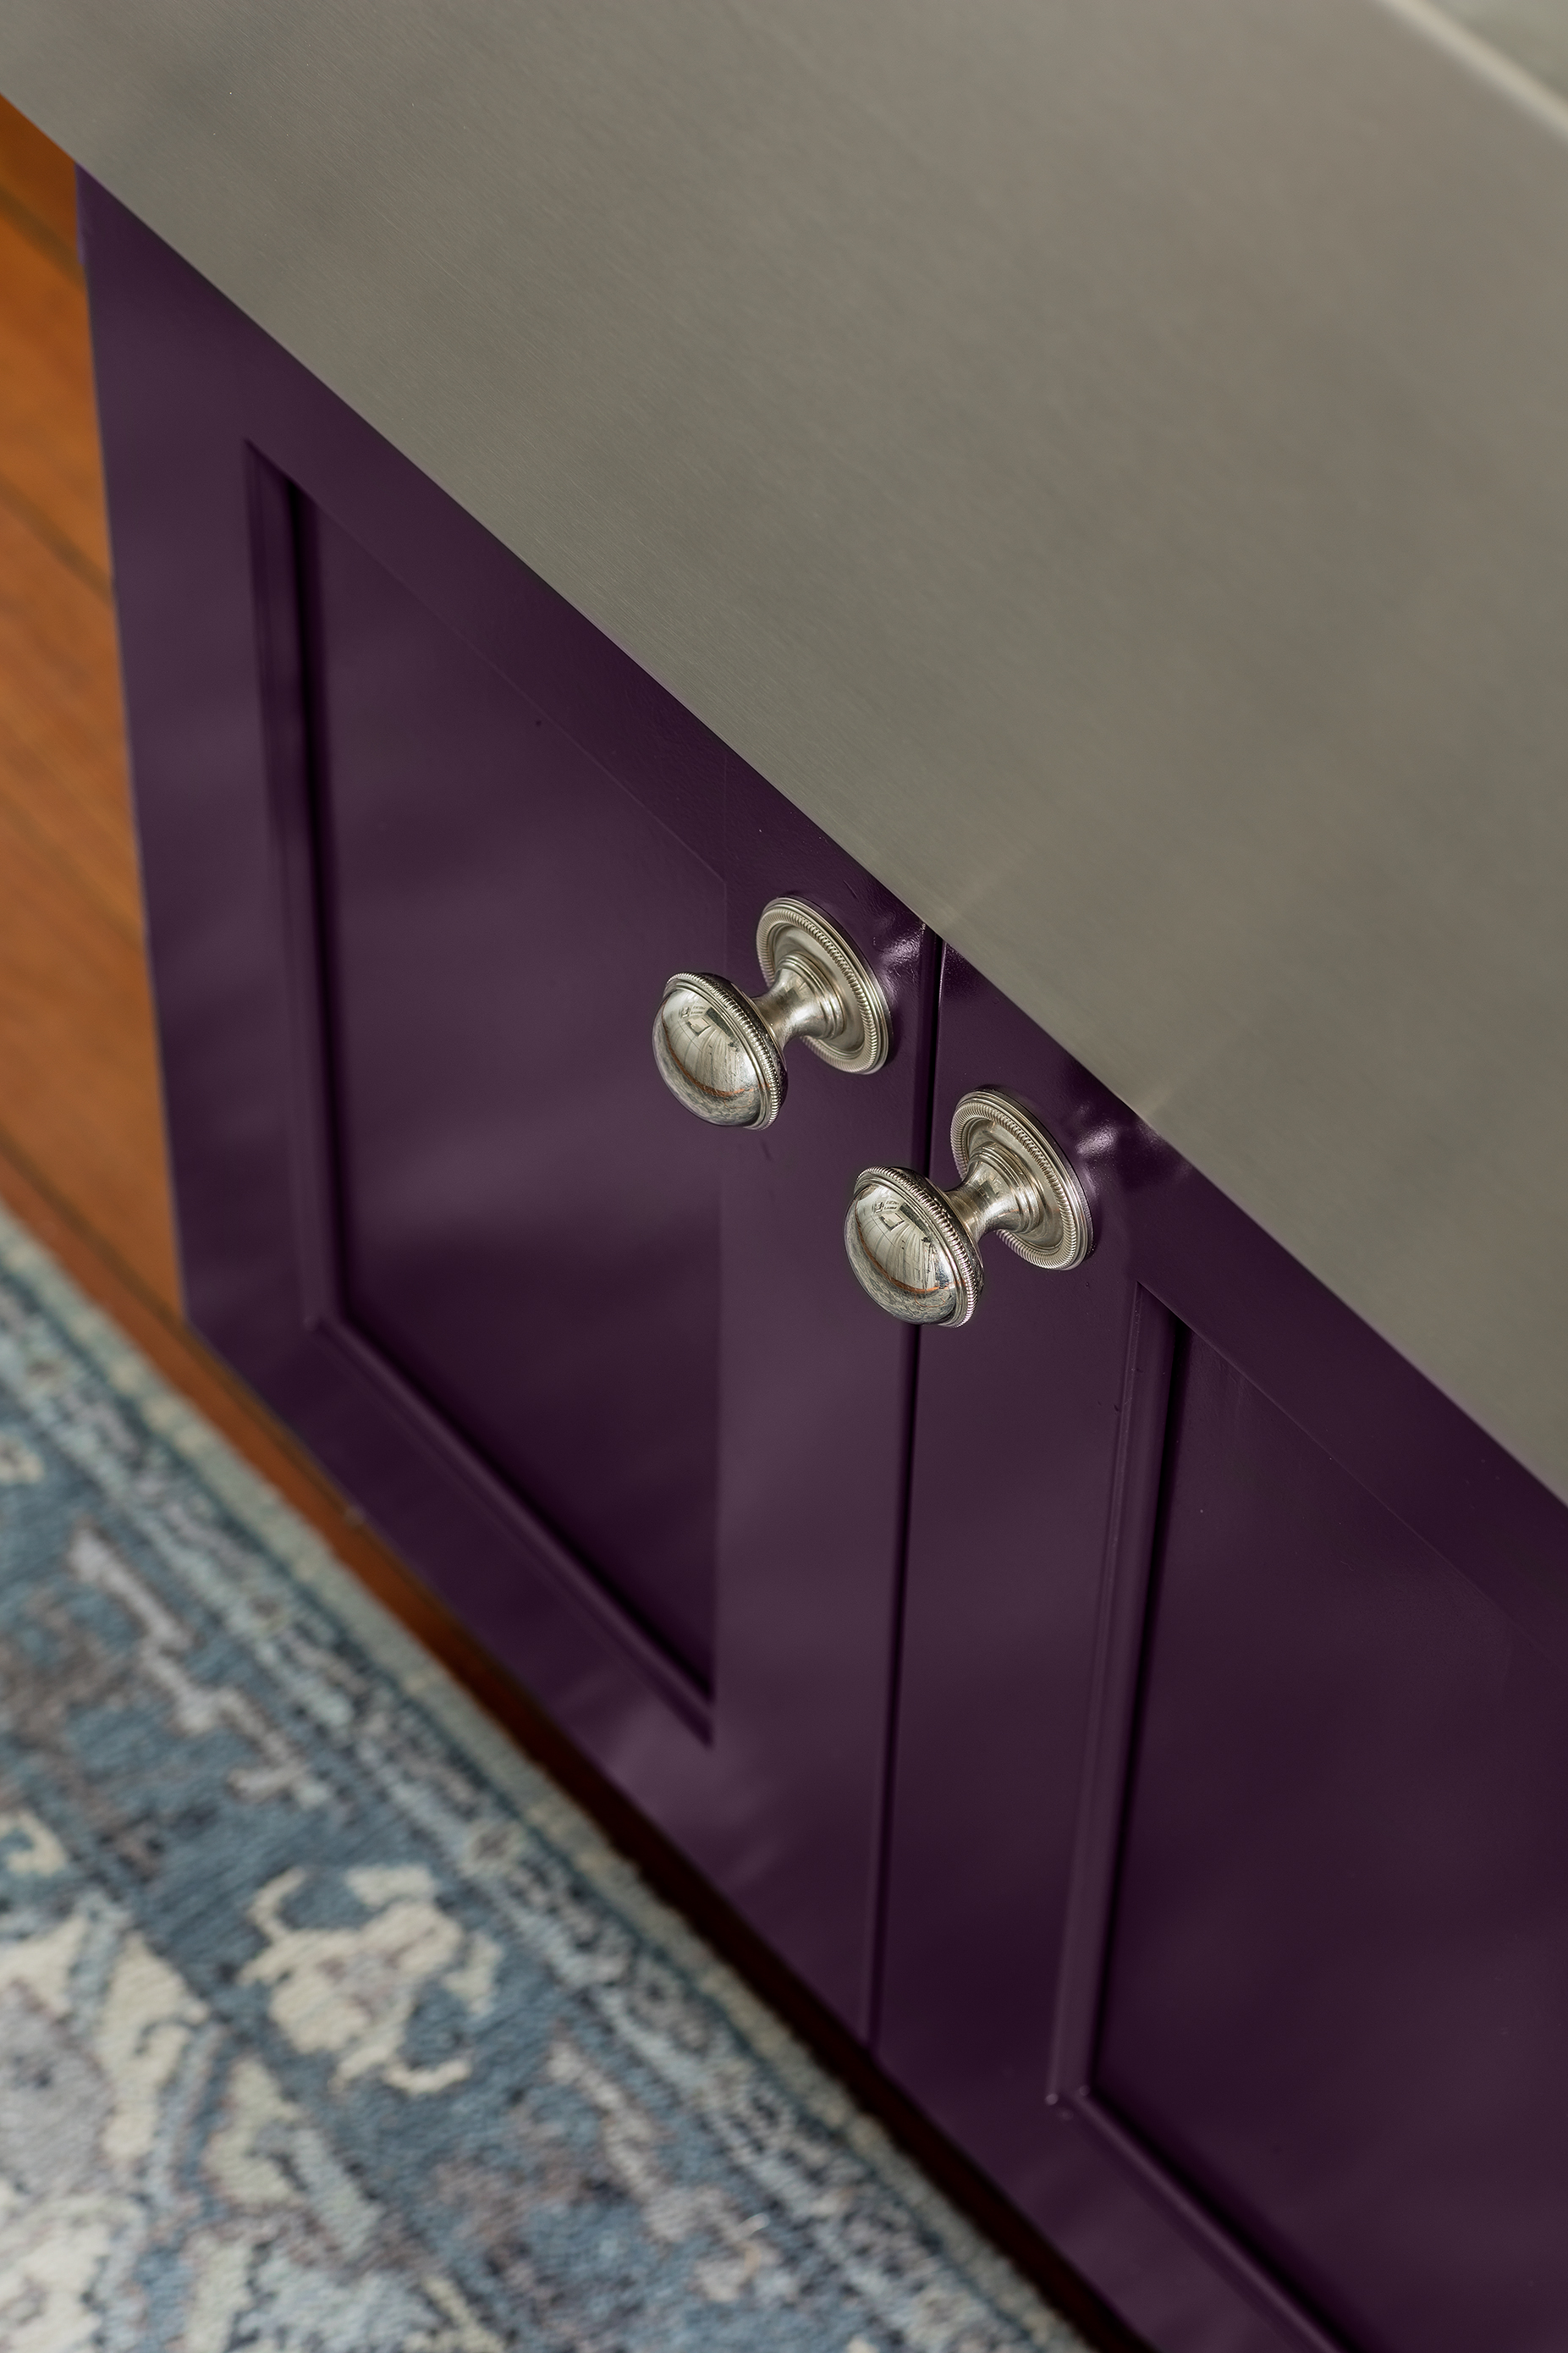 Appliances and Adornment for The Morning Kitchen   Interiors for Families   Kelly Rogers Interiors